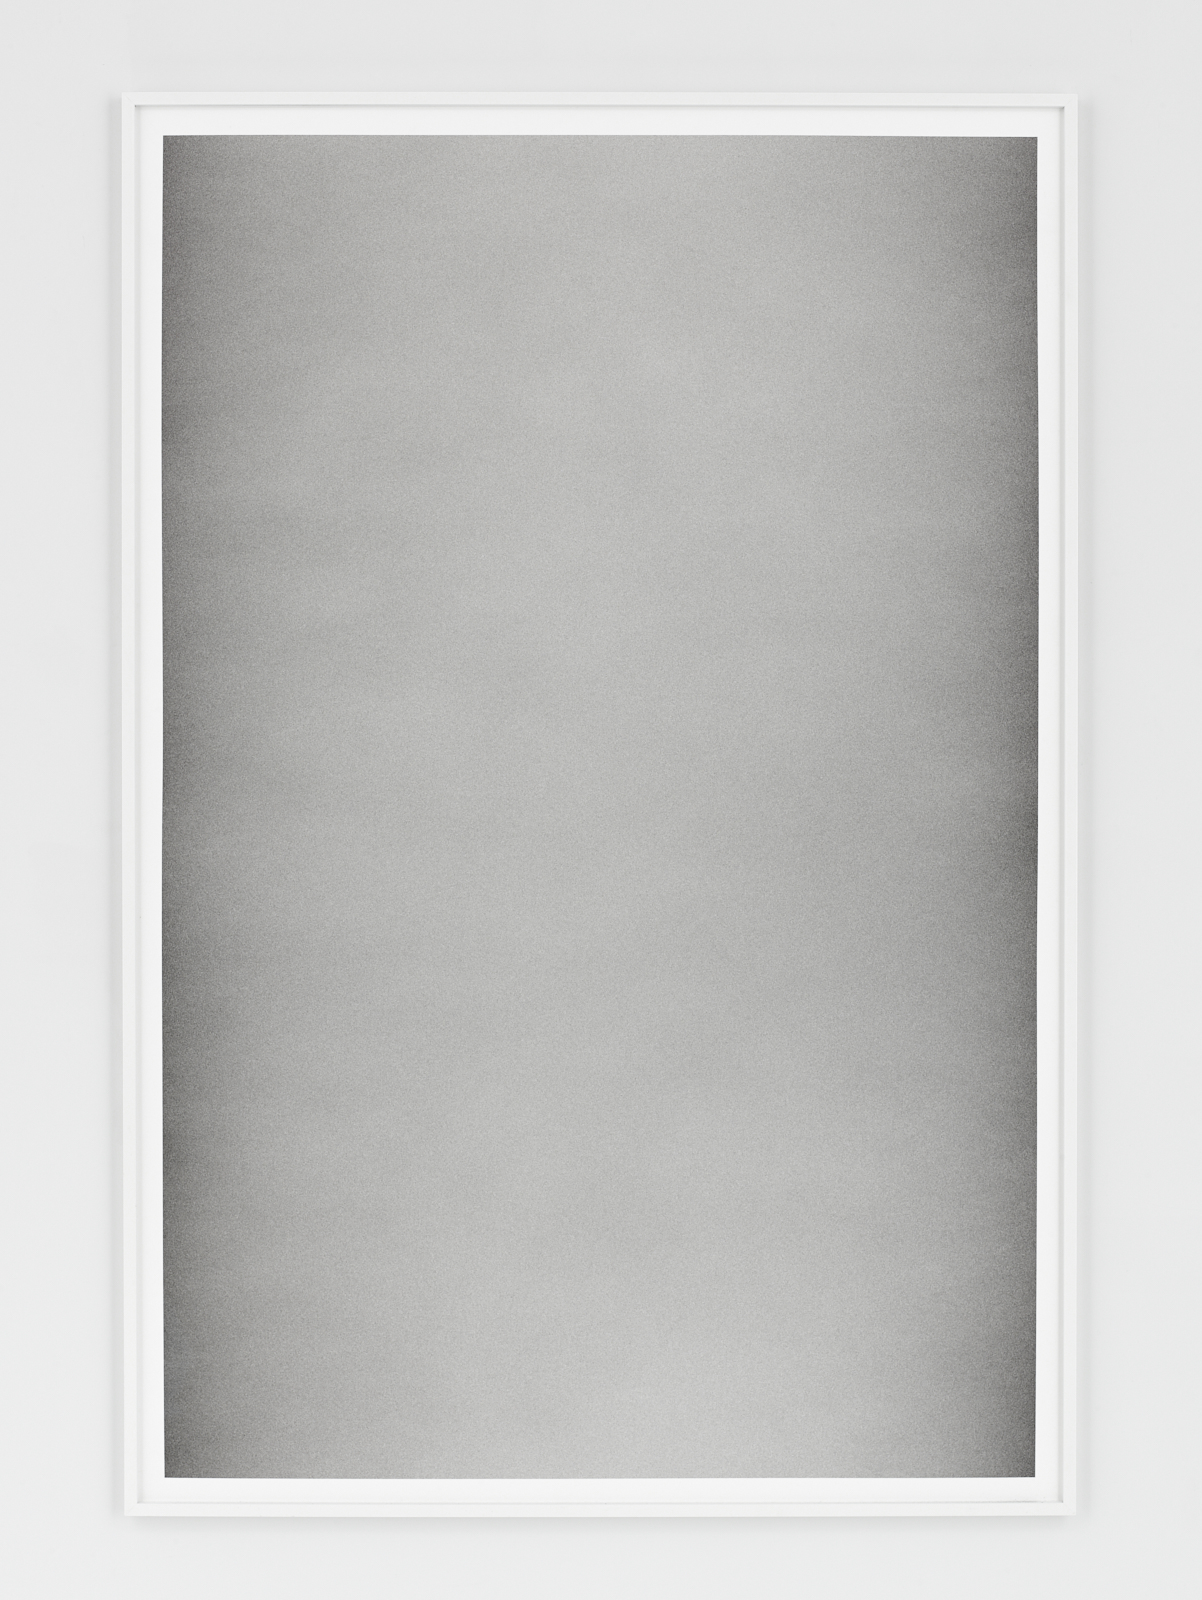 Liminal XIII    Terre de Cassel and silver graphite powder on paper 121.5x81.5 cm 2017